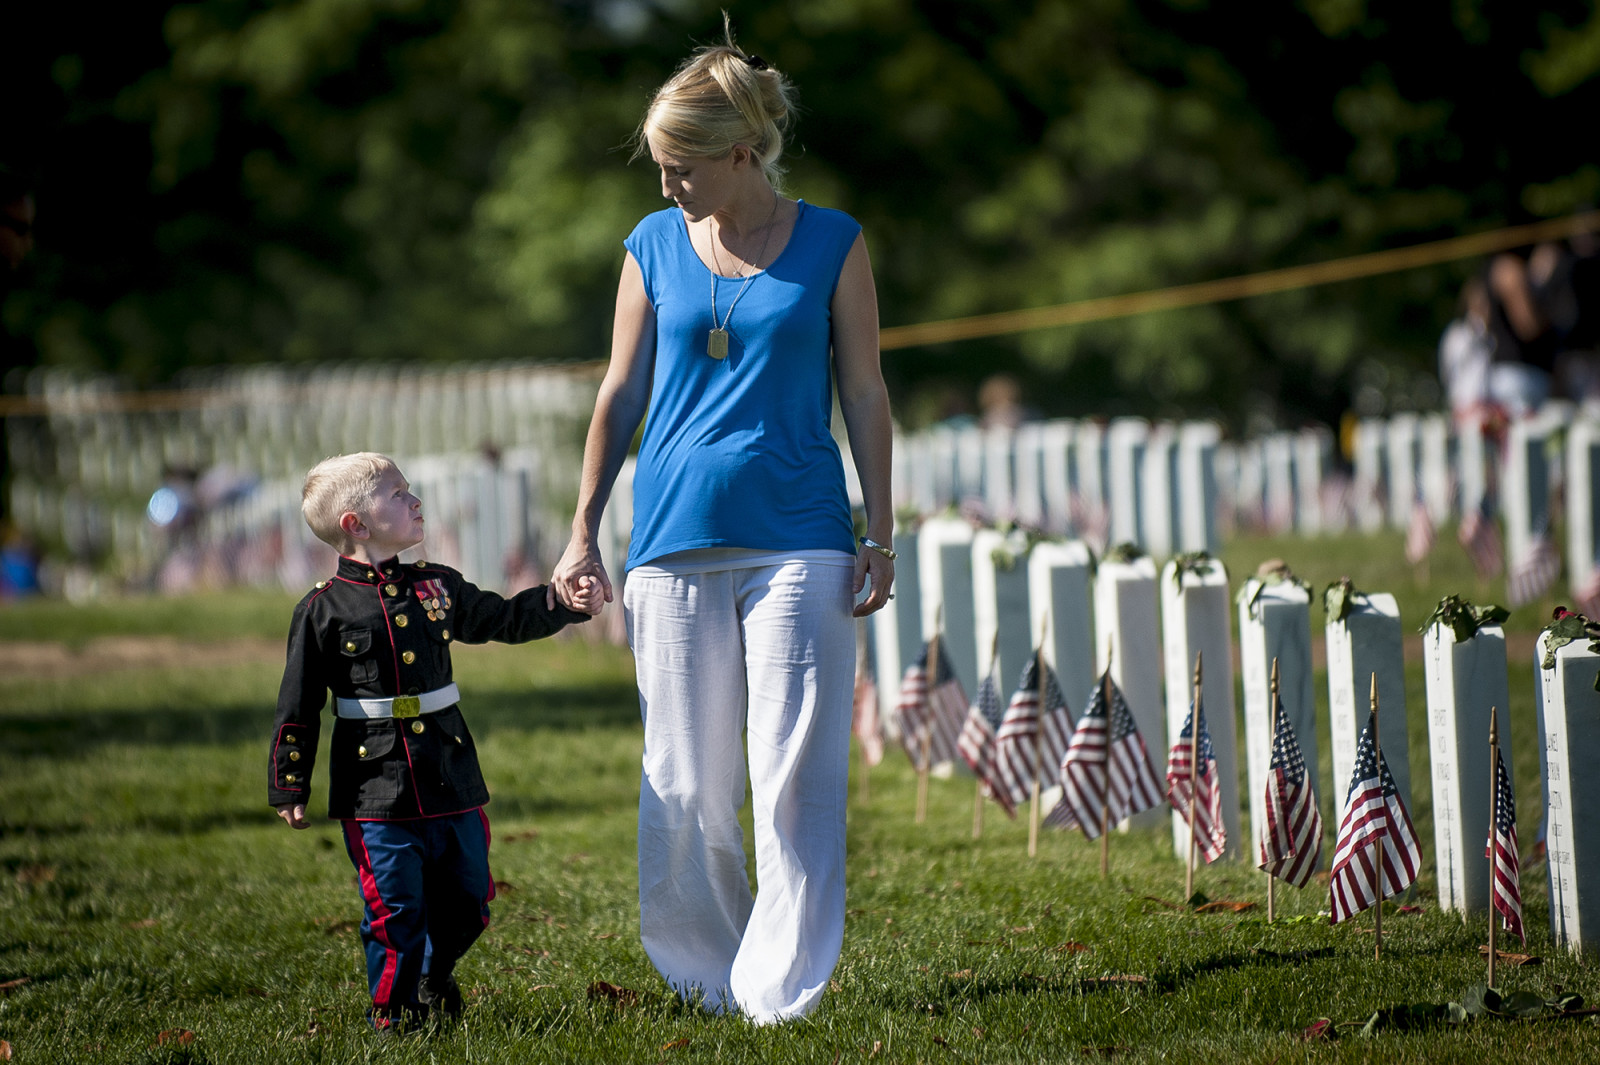 On Memorial Day, Brittany Jacobs of Hertford, North Carolina walks along the rows of headstones in Section 60 at Arlington National Cemetery with her son, Christian, 3, in Arlington, Virginia, USA, on 26 May 2014. Jacobs and her son were visiting the grave of her husband, Marine Sgt. Christopher Jacobs. (Pete Marovich/ European PressPhoto Agency)